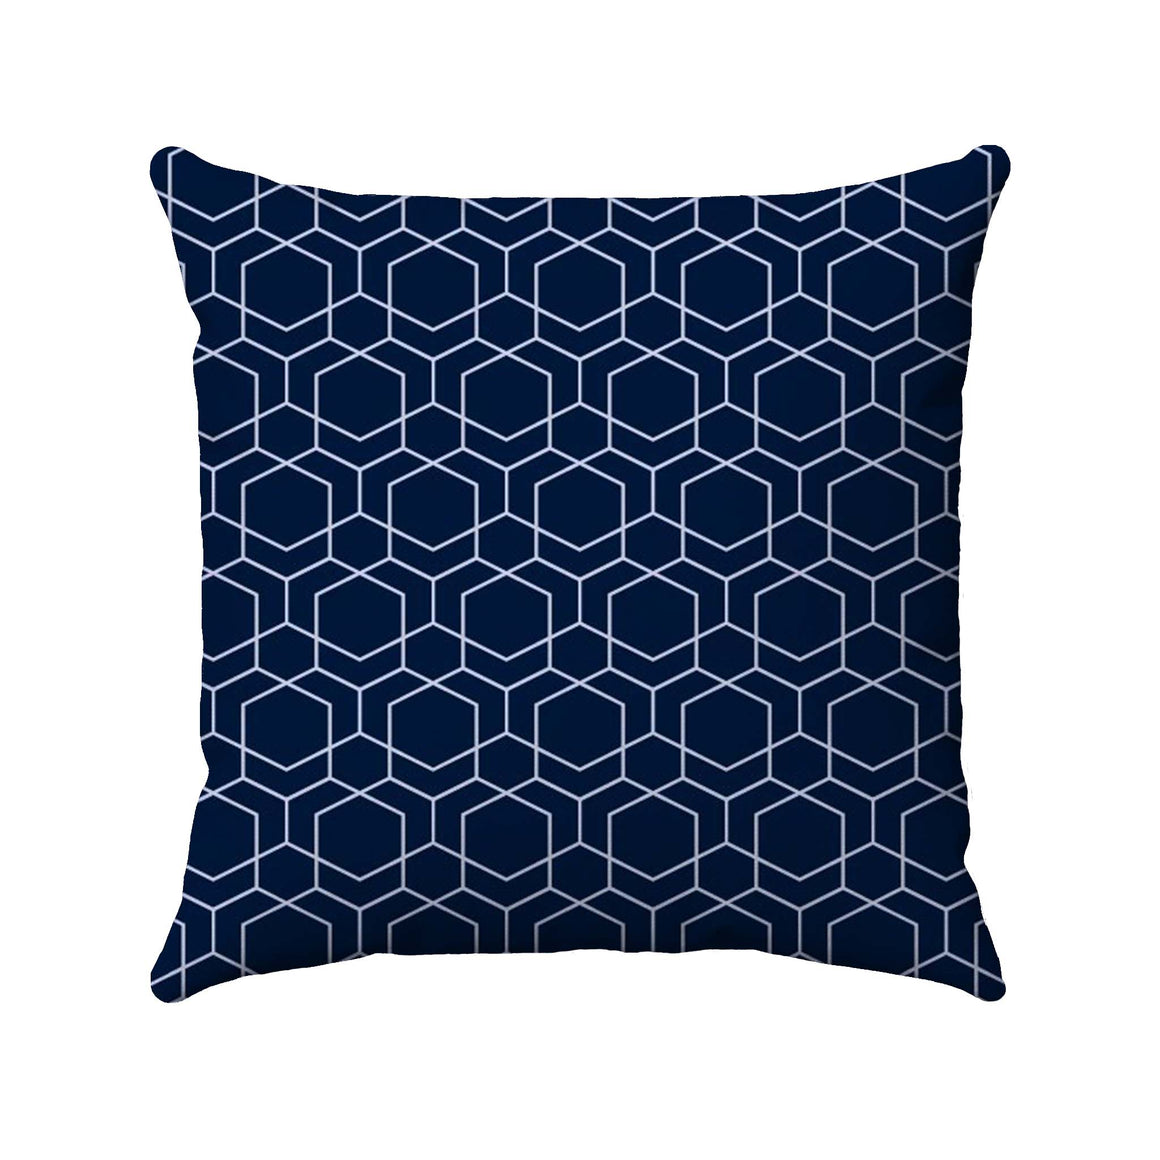 Light slate blue line drawing of geometric cubes arranged in a honeycomb-like structure on a dark navy background.